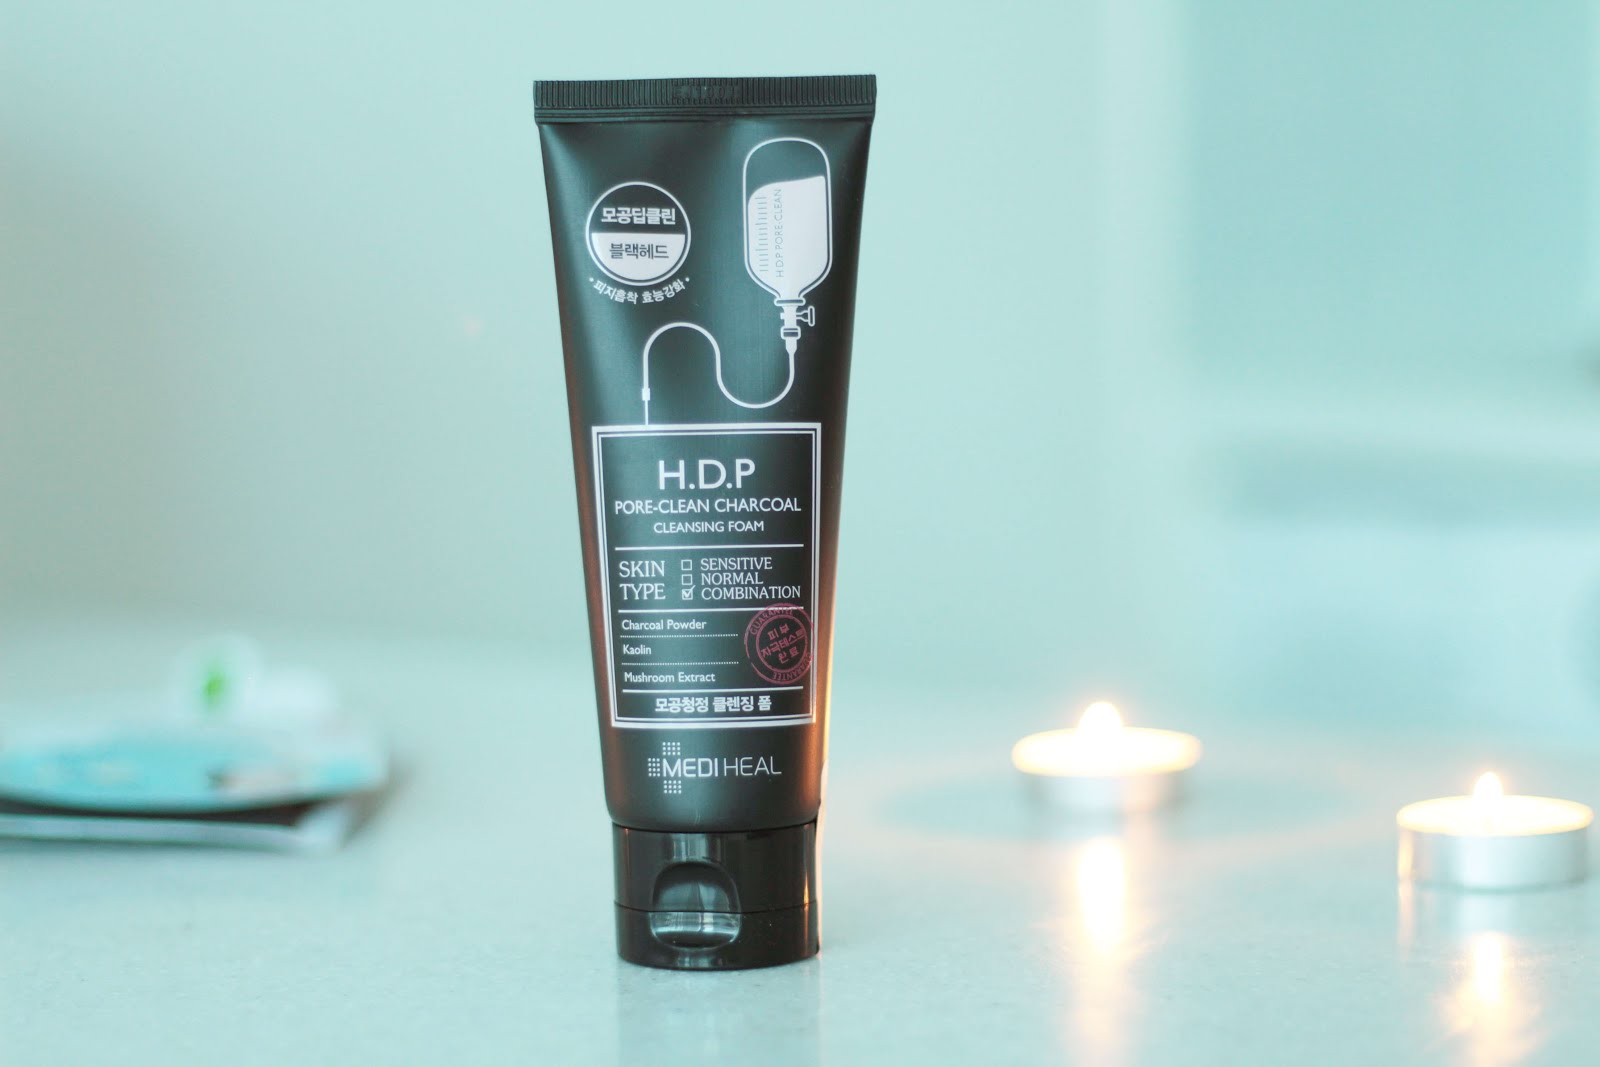 mediheal H.D.P pore-clean charcoal cleansing foam